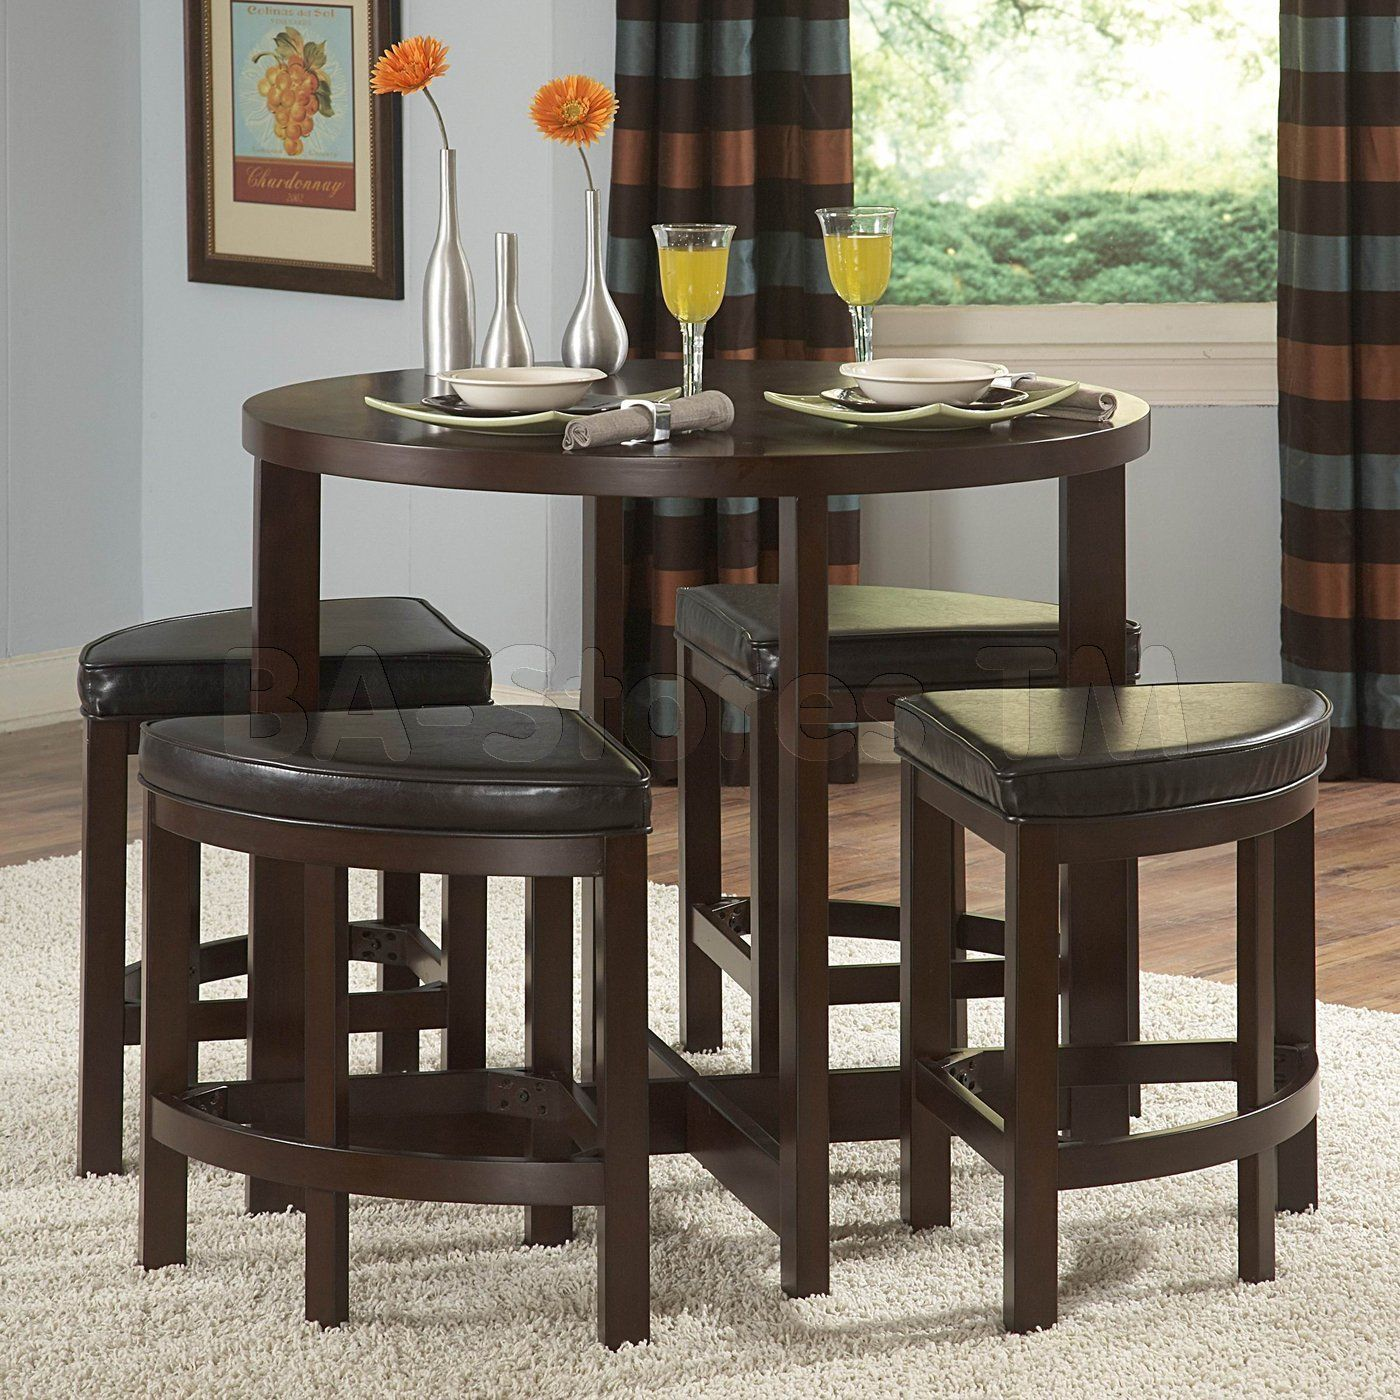 I want this dining table! | House Decor Ideas | Pinterest | Dining ...